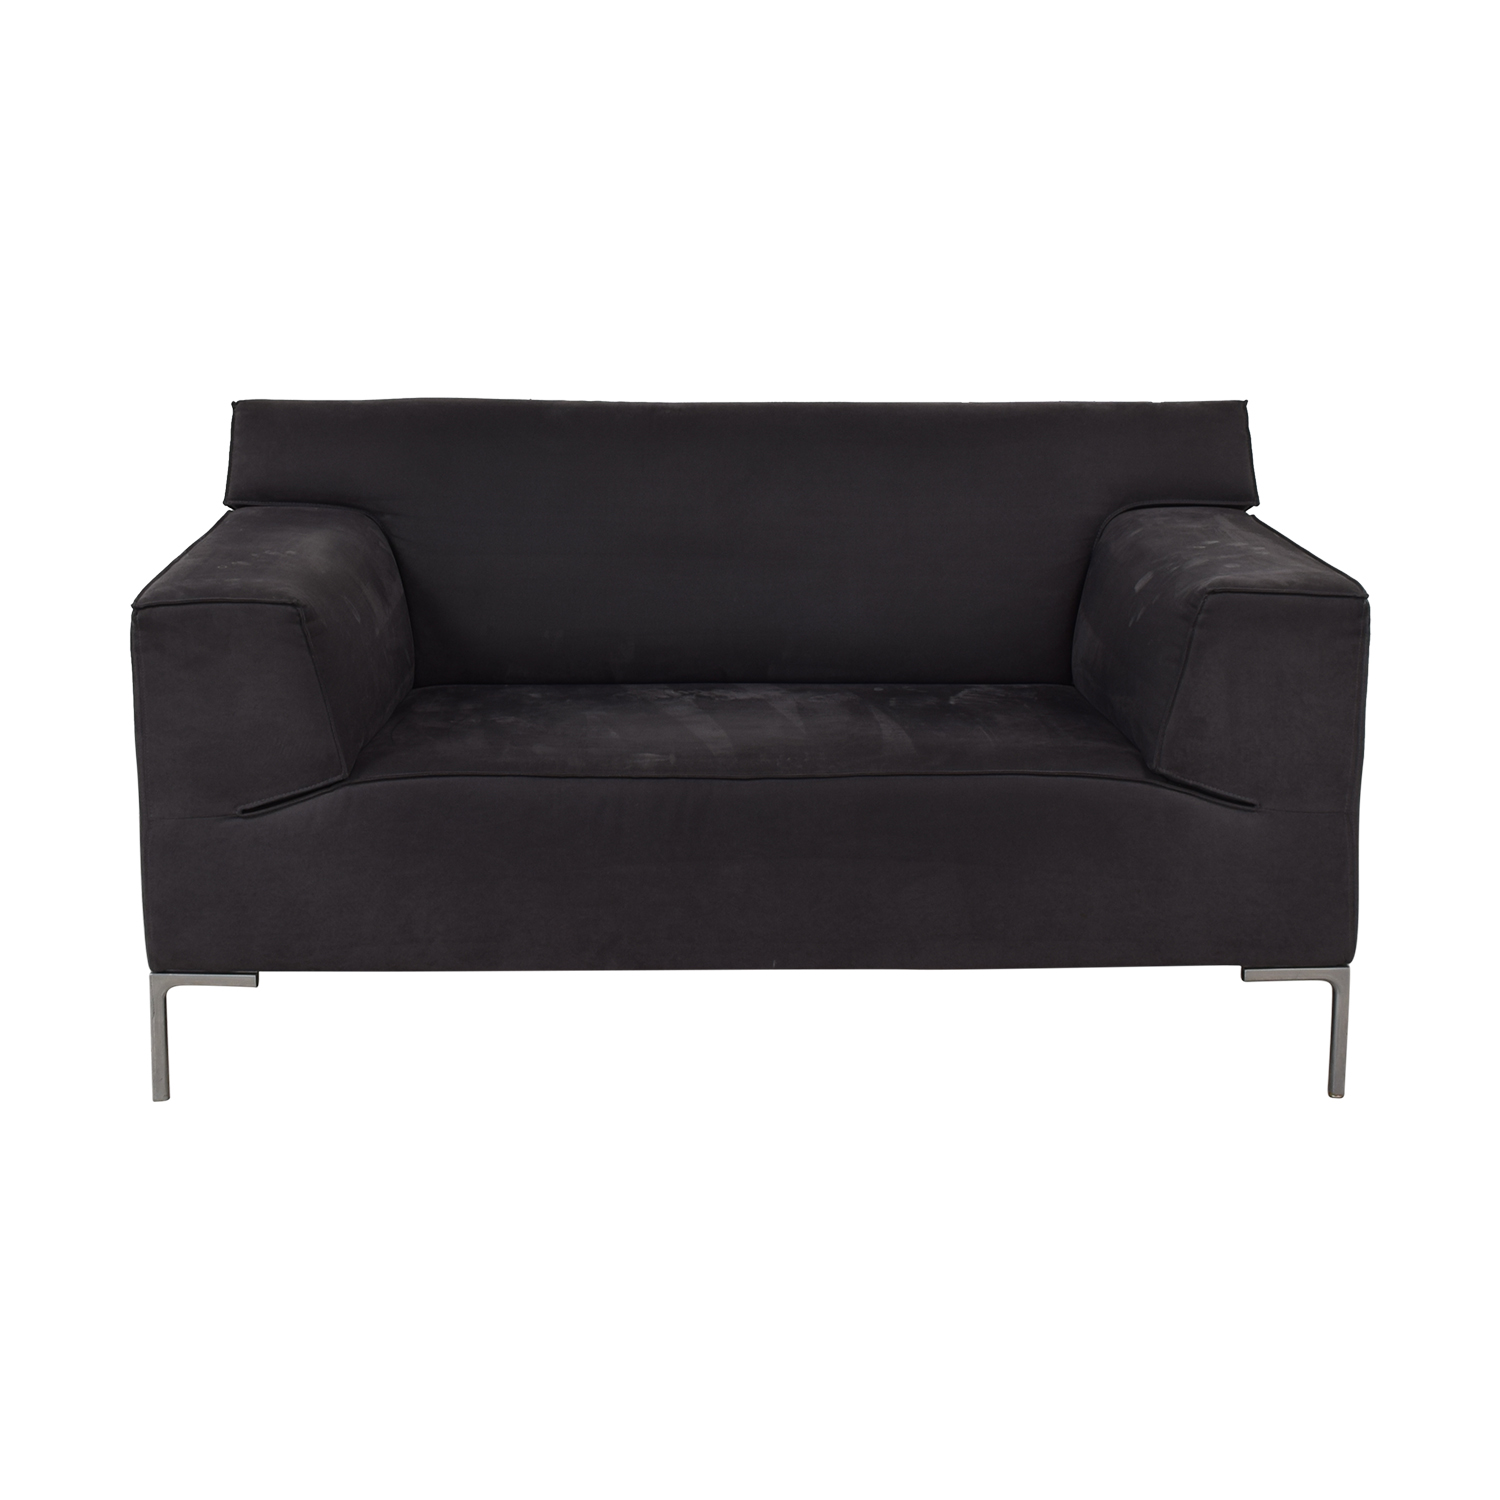 shop Design On Stock USA Bloq Loveseat Design on Stock Sofas